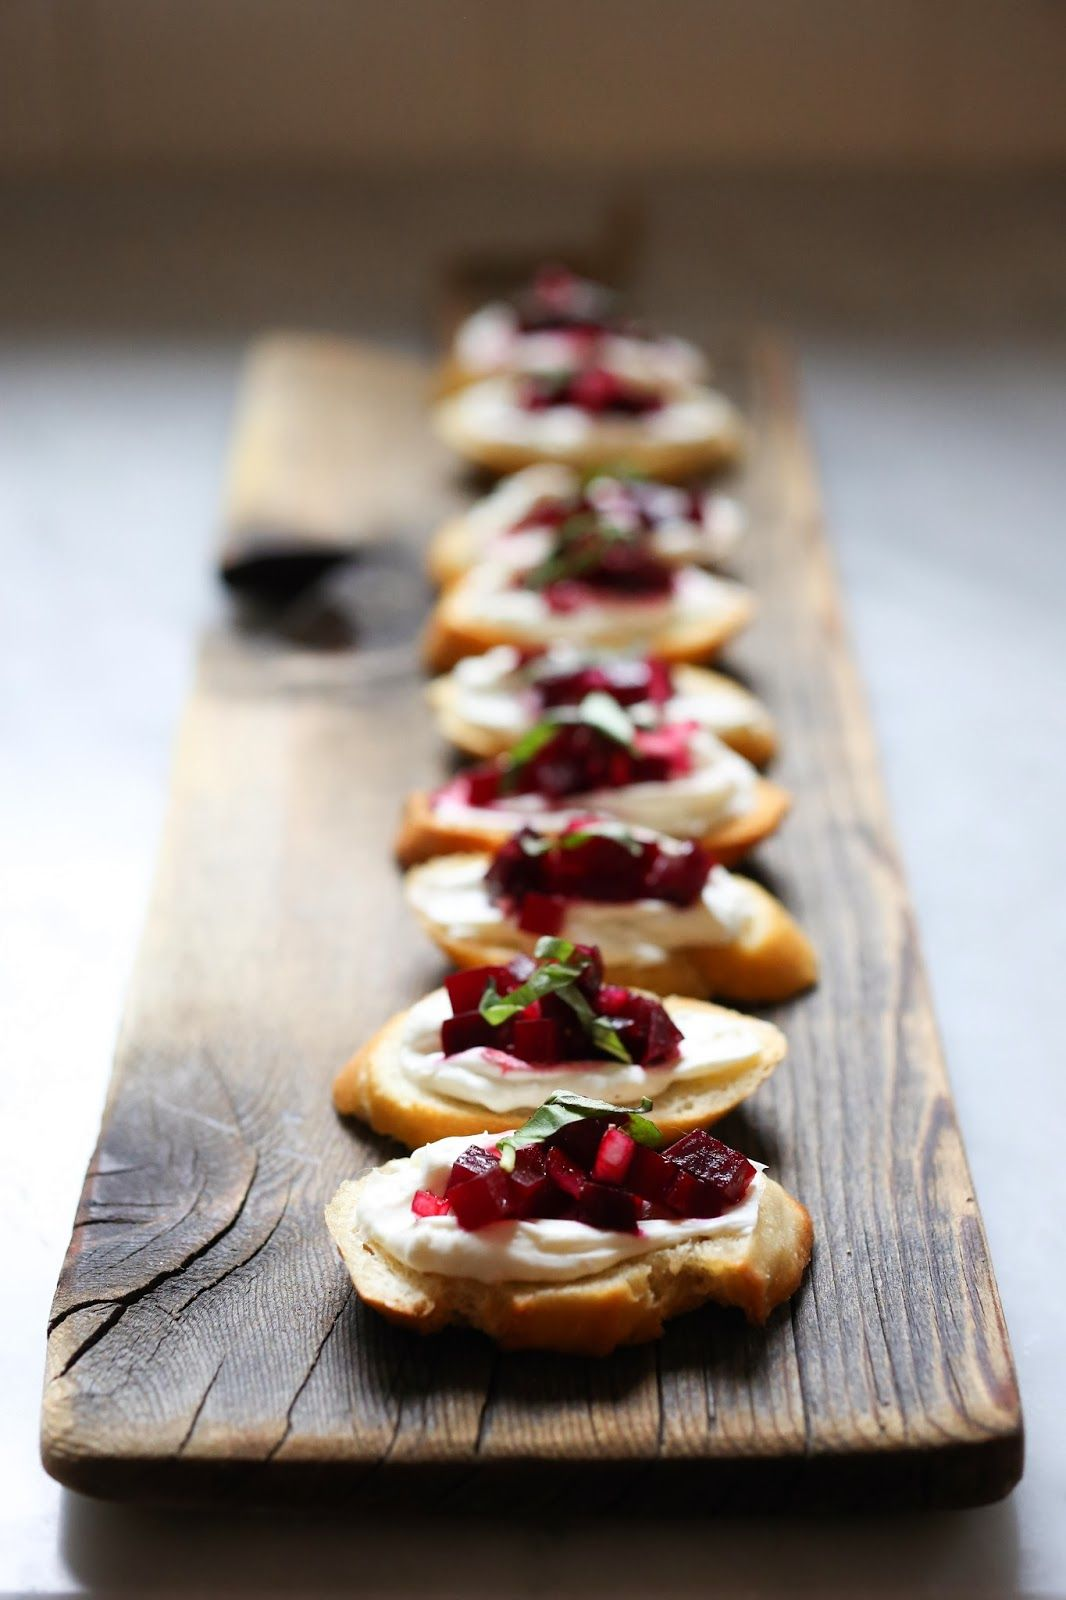 beet bruschetta with goat cheese and basil recette lunchables entree pinterest canap s. Black Bedroom Furniture Sets. Home Design Ideas